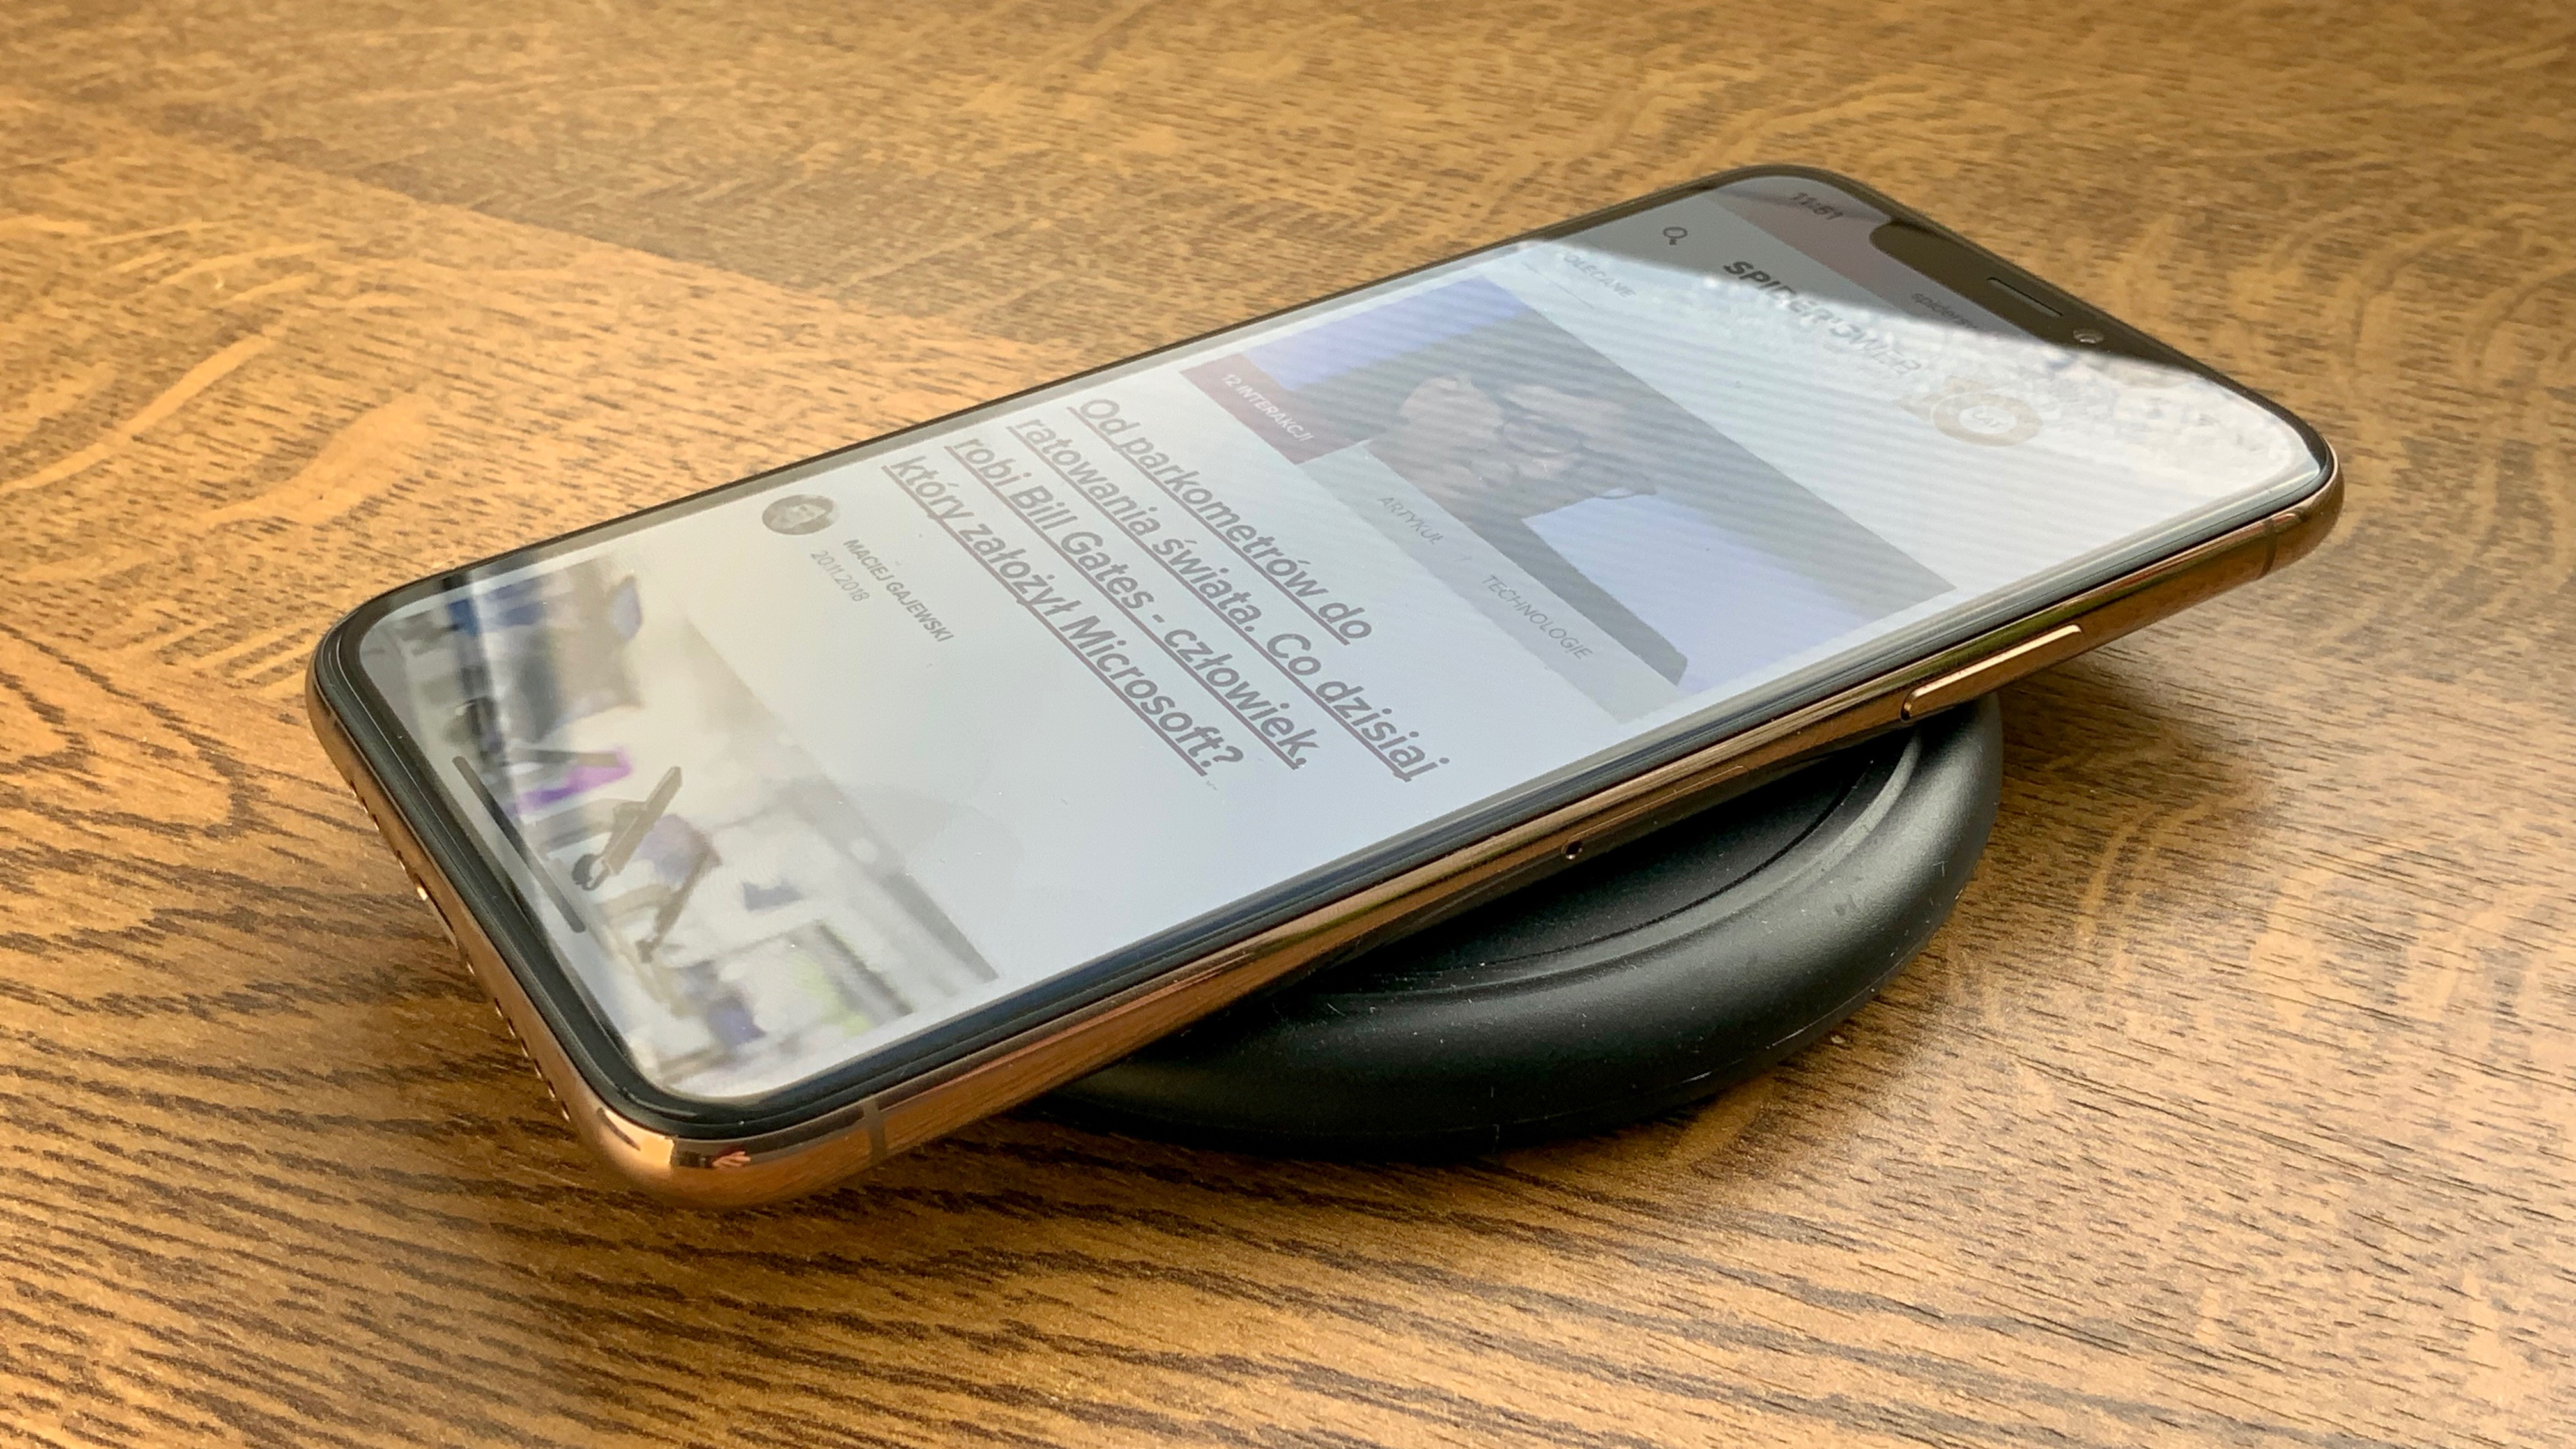 mophie 1 qi Wireless Charging Base